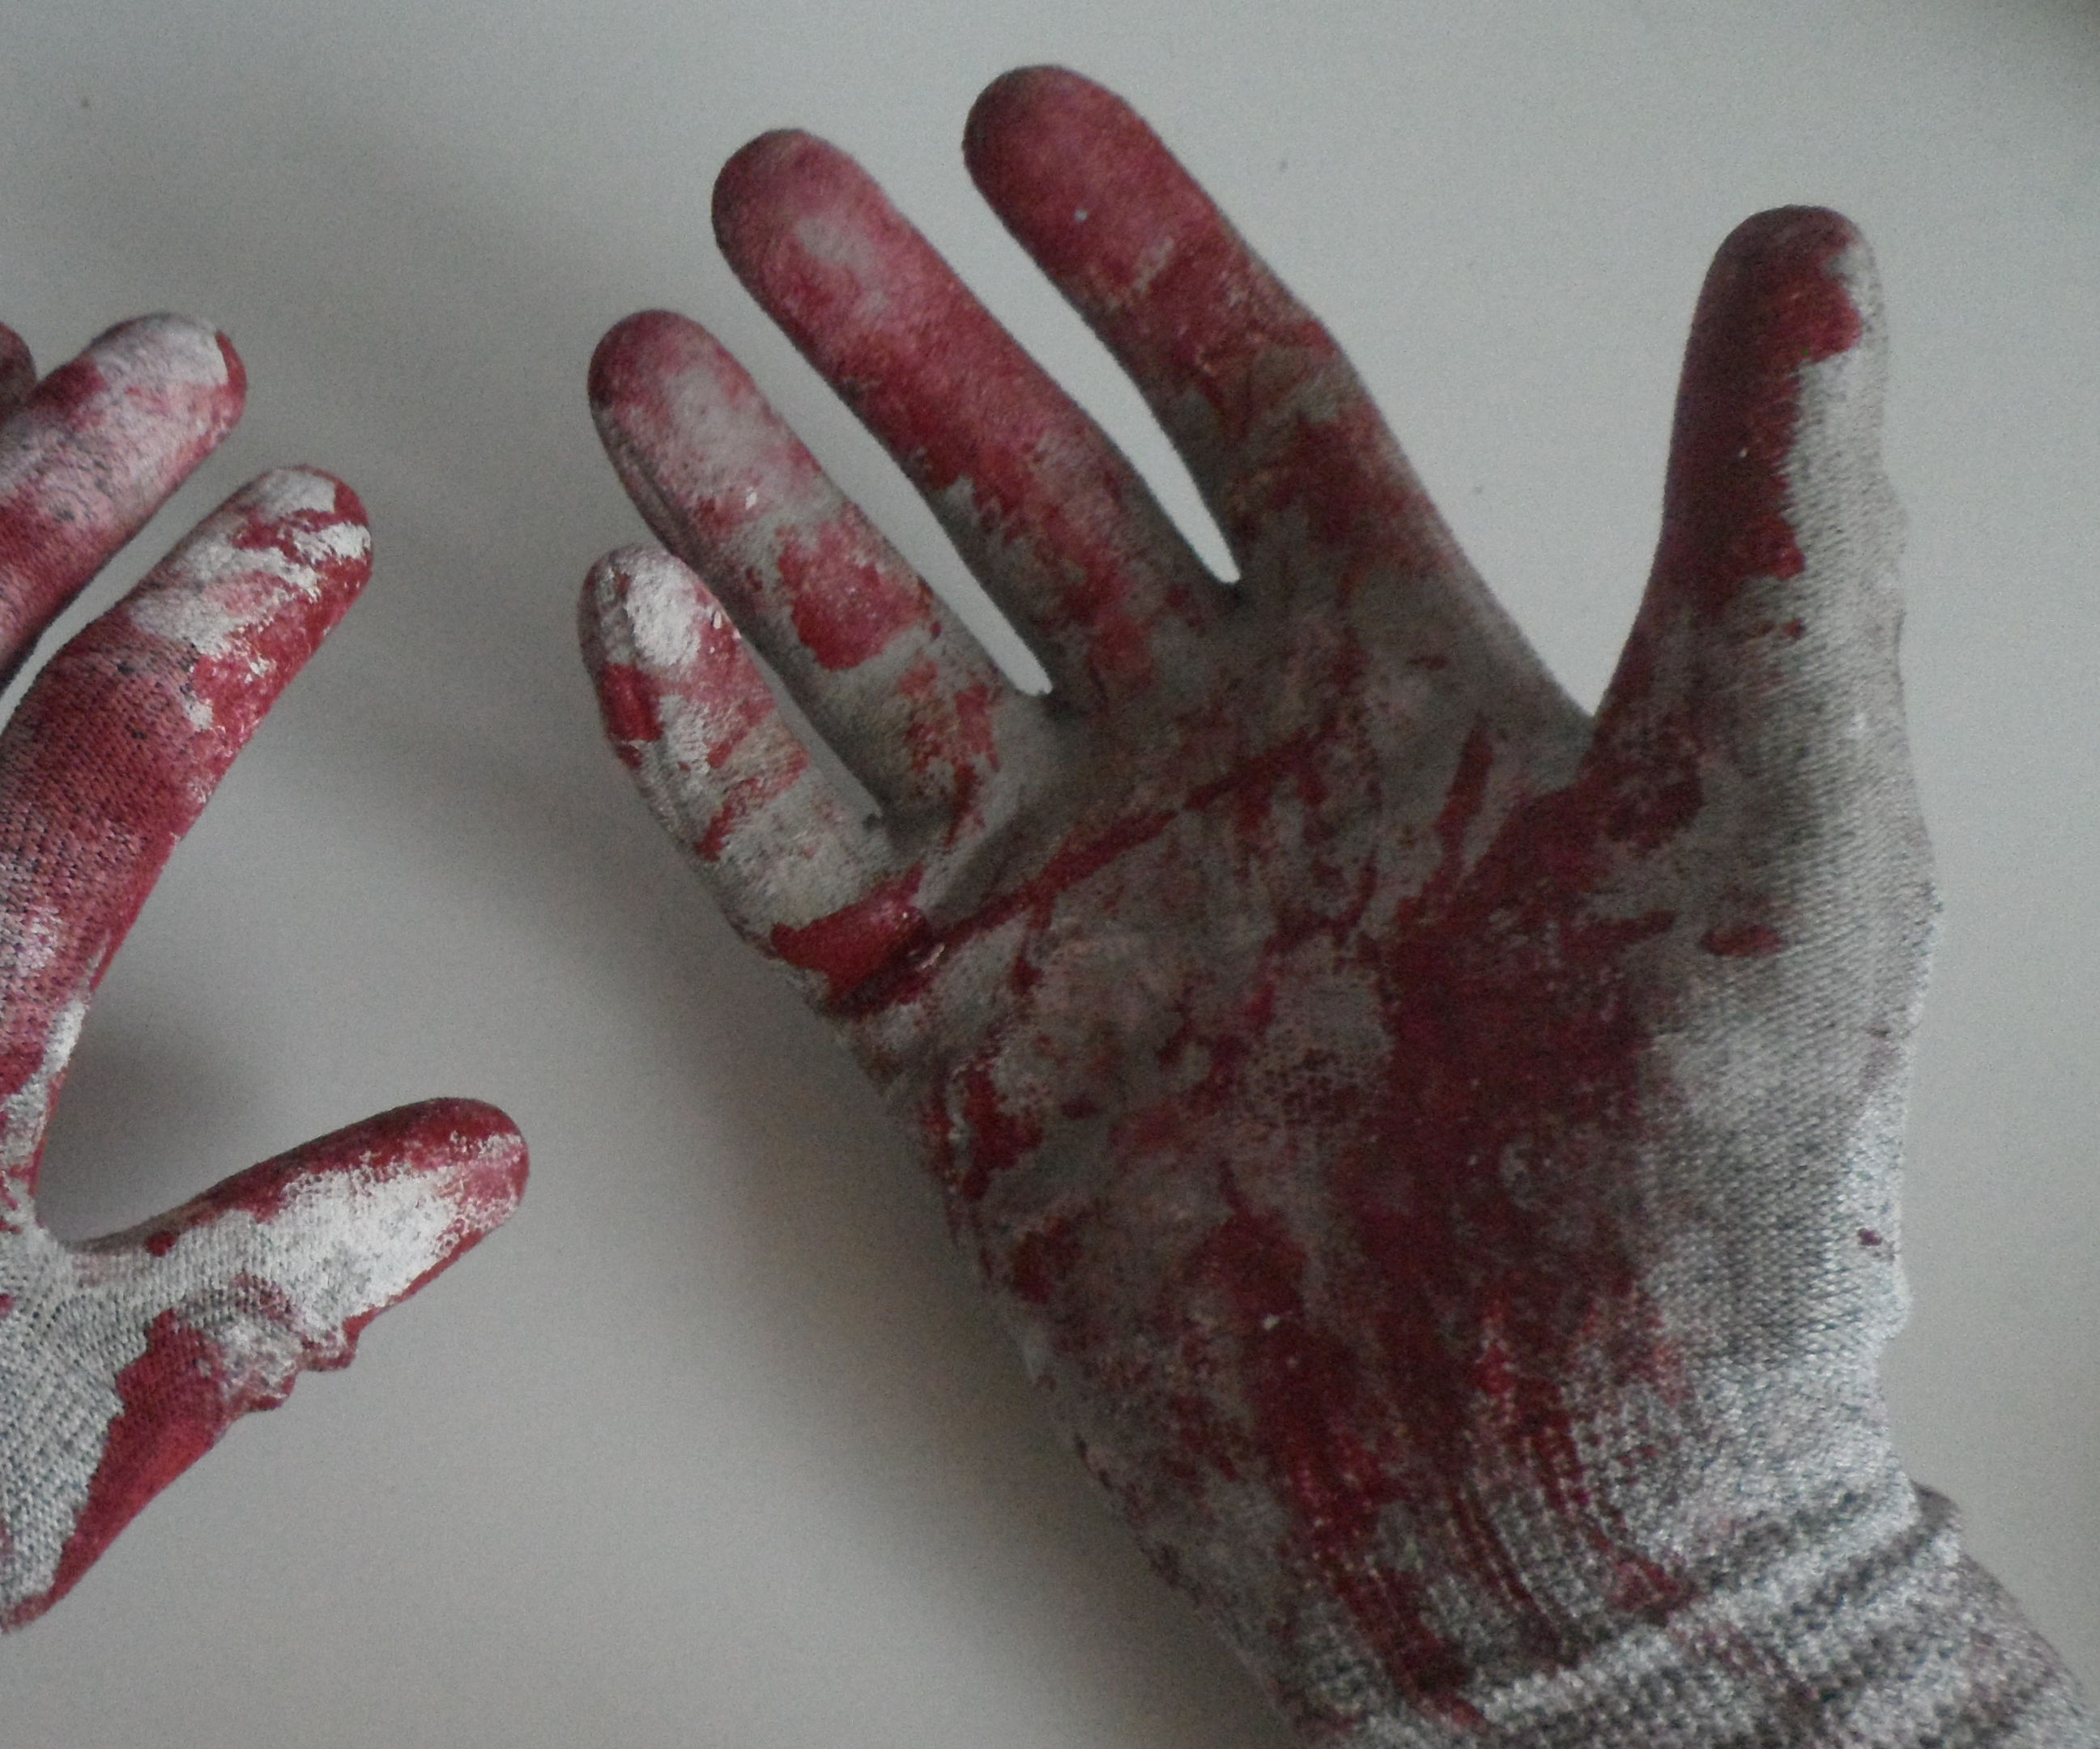 Bloodied Gloves